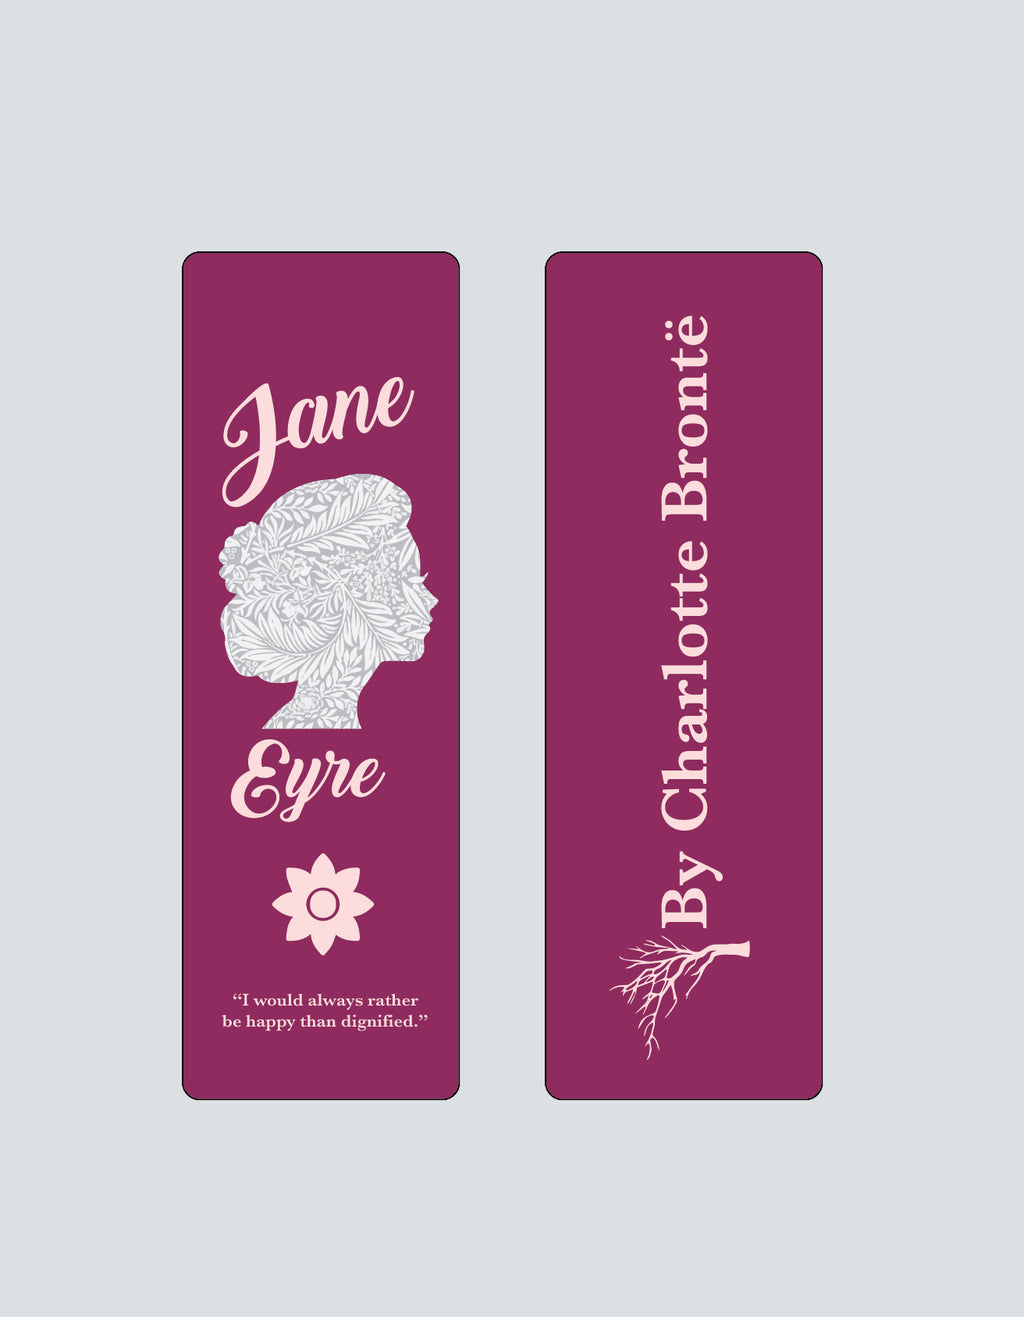 Jane Eyre by Charlotte Brontë Bookmark